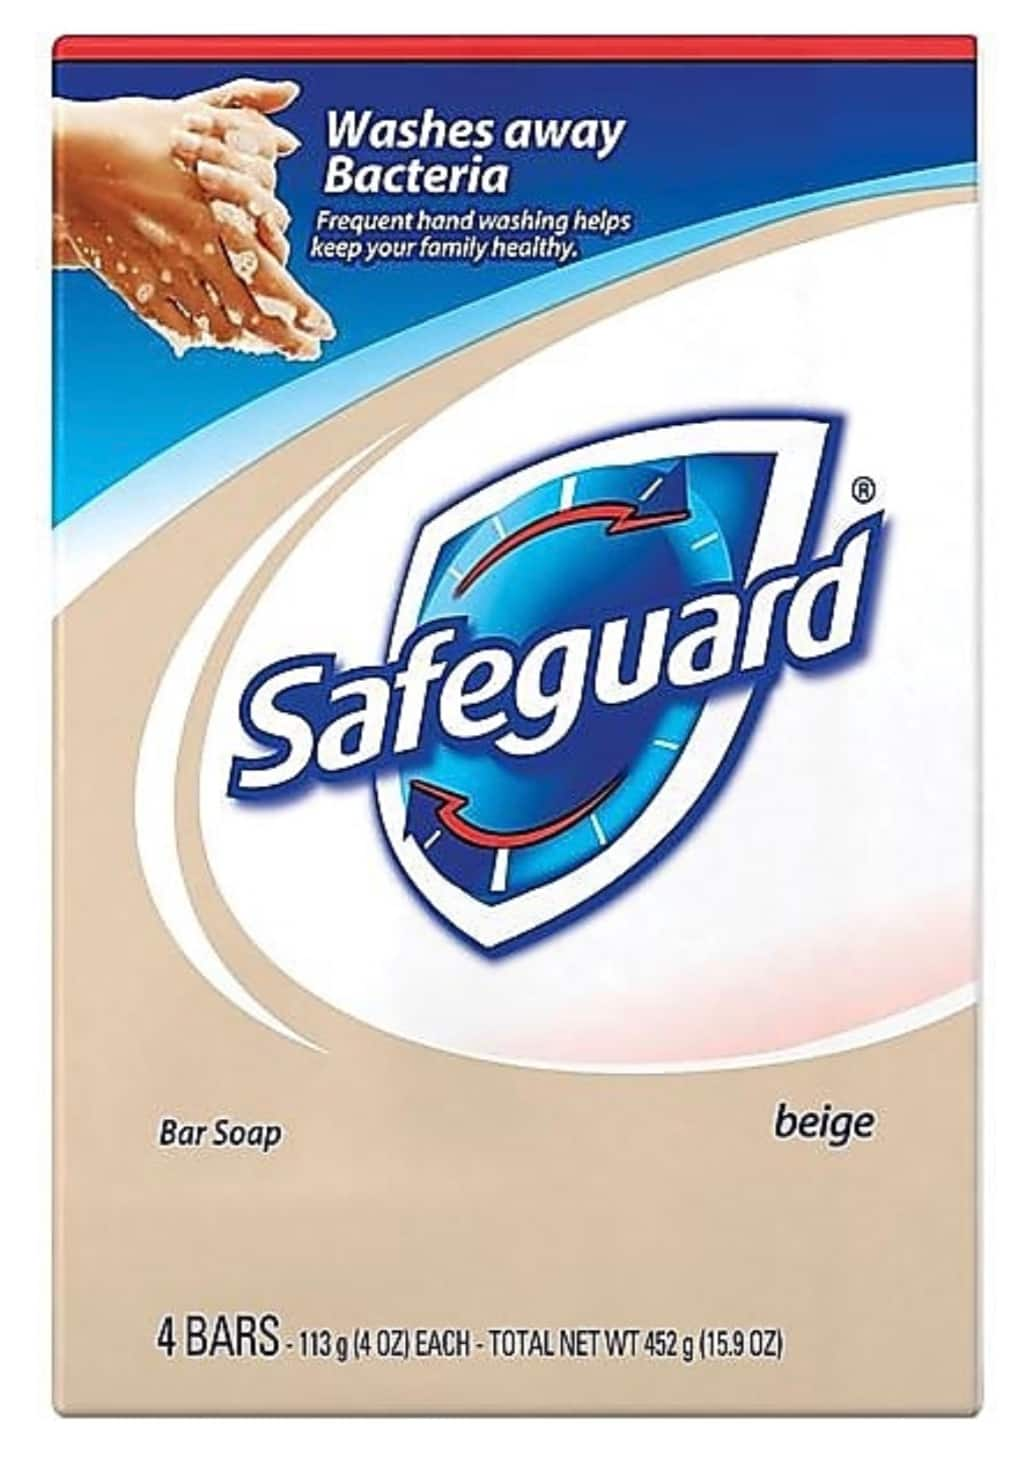 Safeguard soap $16.79 - 48 full sized antibacterial bars Free Shipping